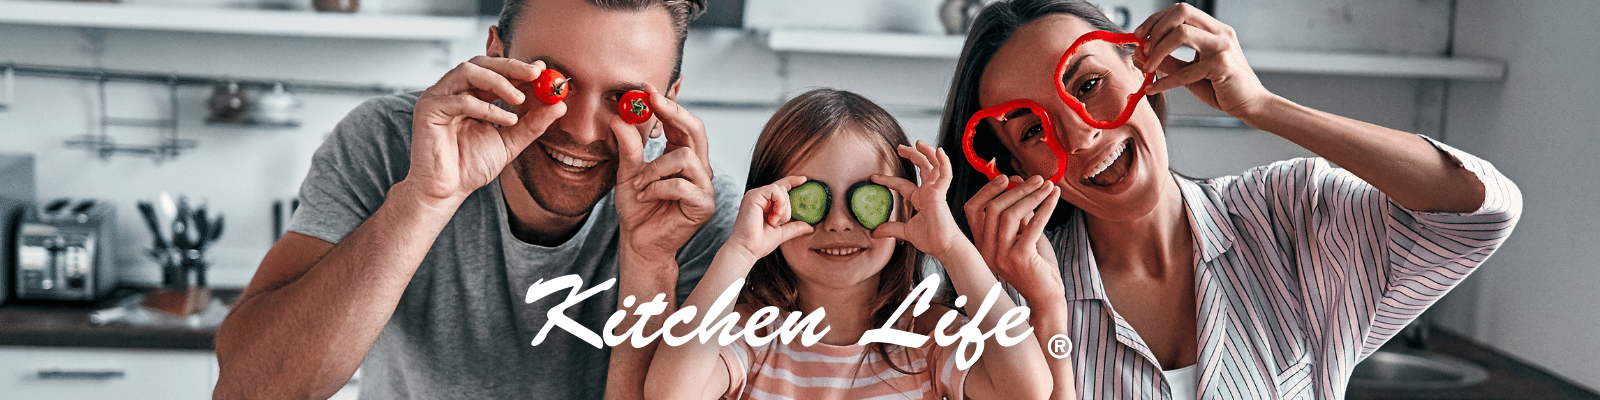 About Us | Best Kitchen Gadgets & Accessories | Kitchen Life Store Most of our energy is invested in creating and designing high quality kitchen products. Our dedicated team of highly qualified professionals has a proven track record.